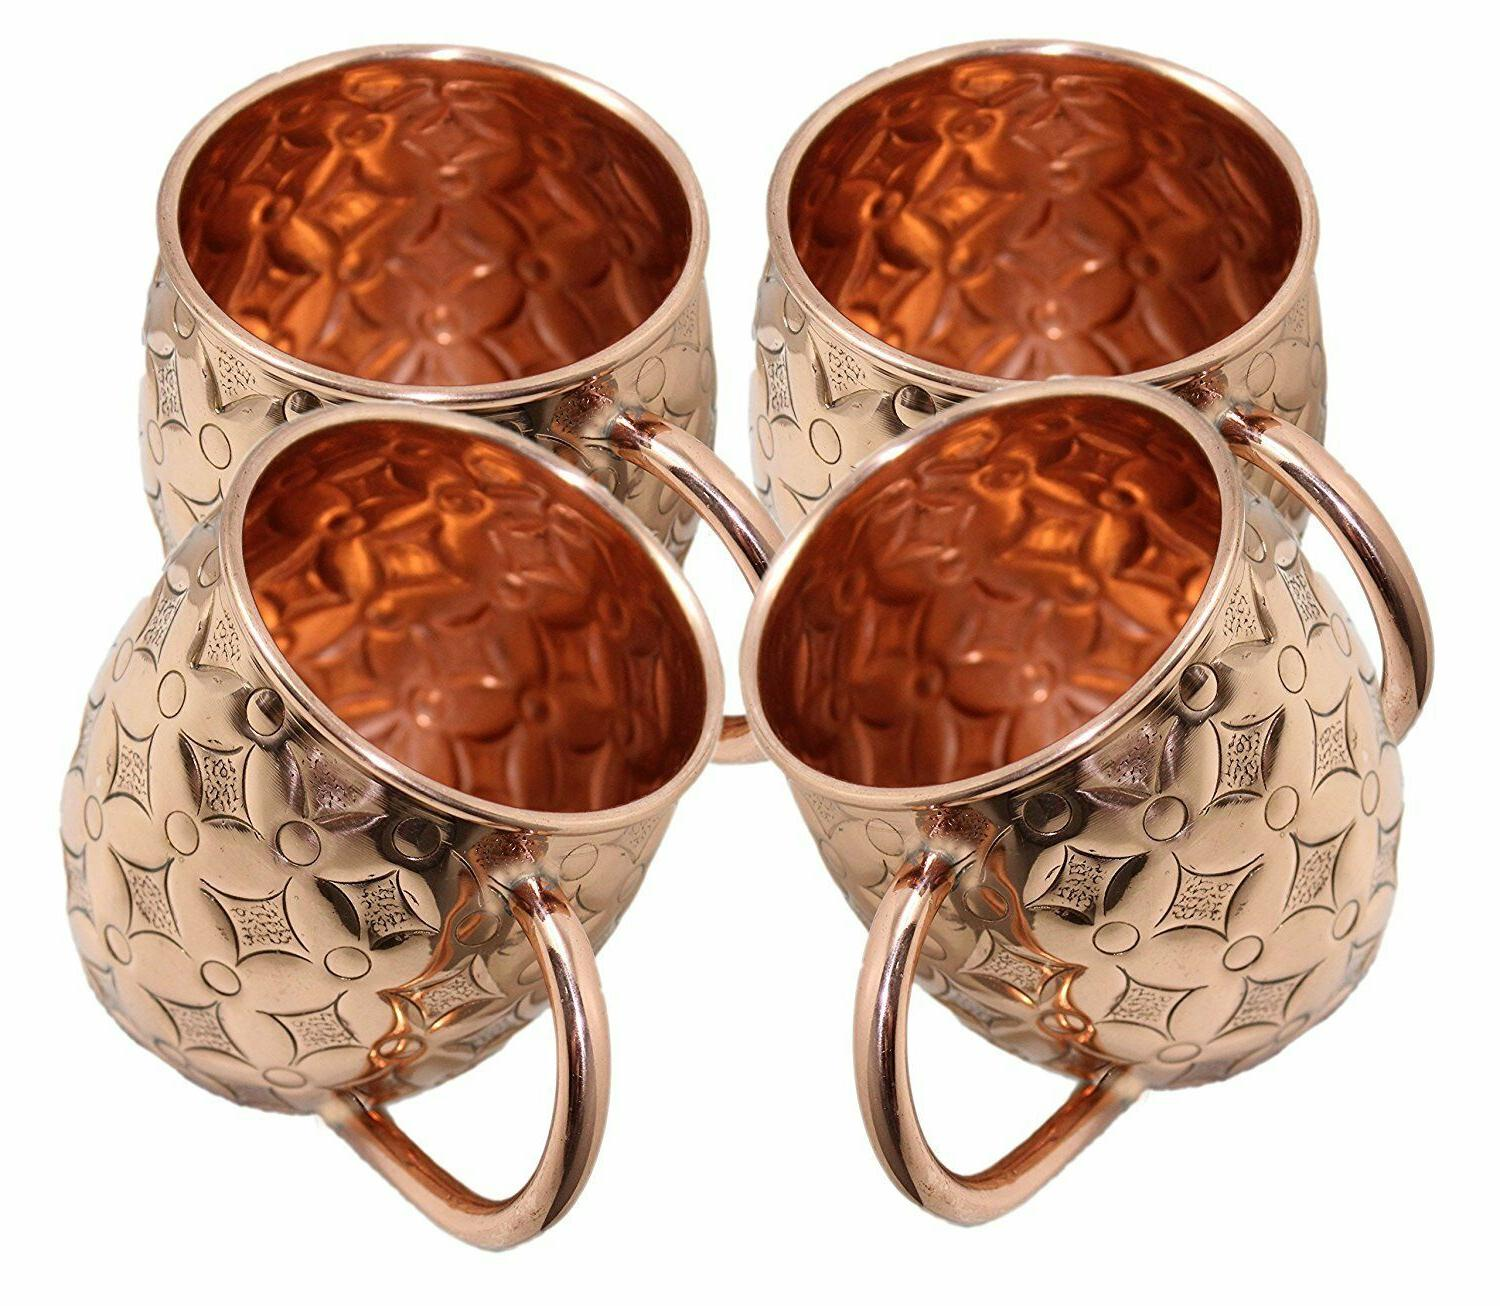 Moscow Mule Mugs Cups Gift Barware Hammered